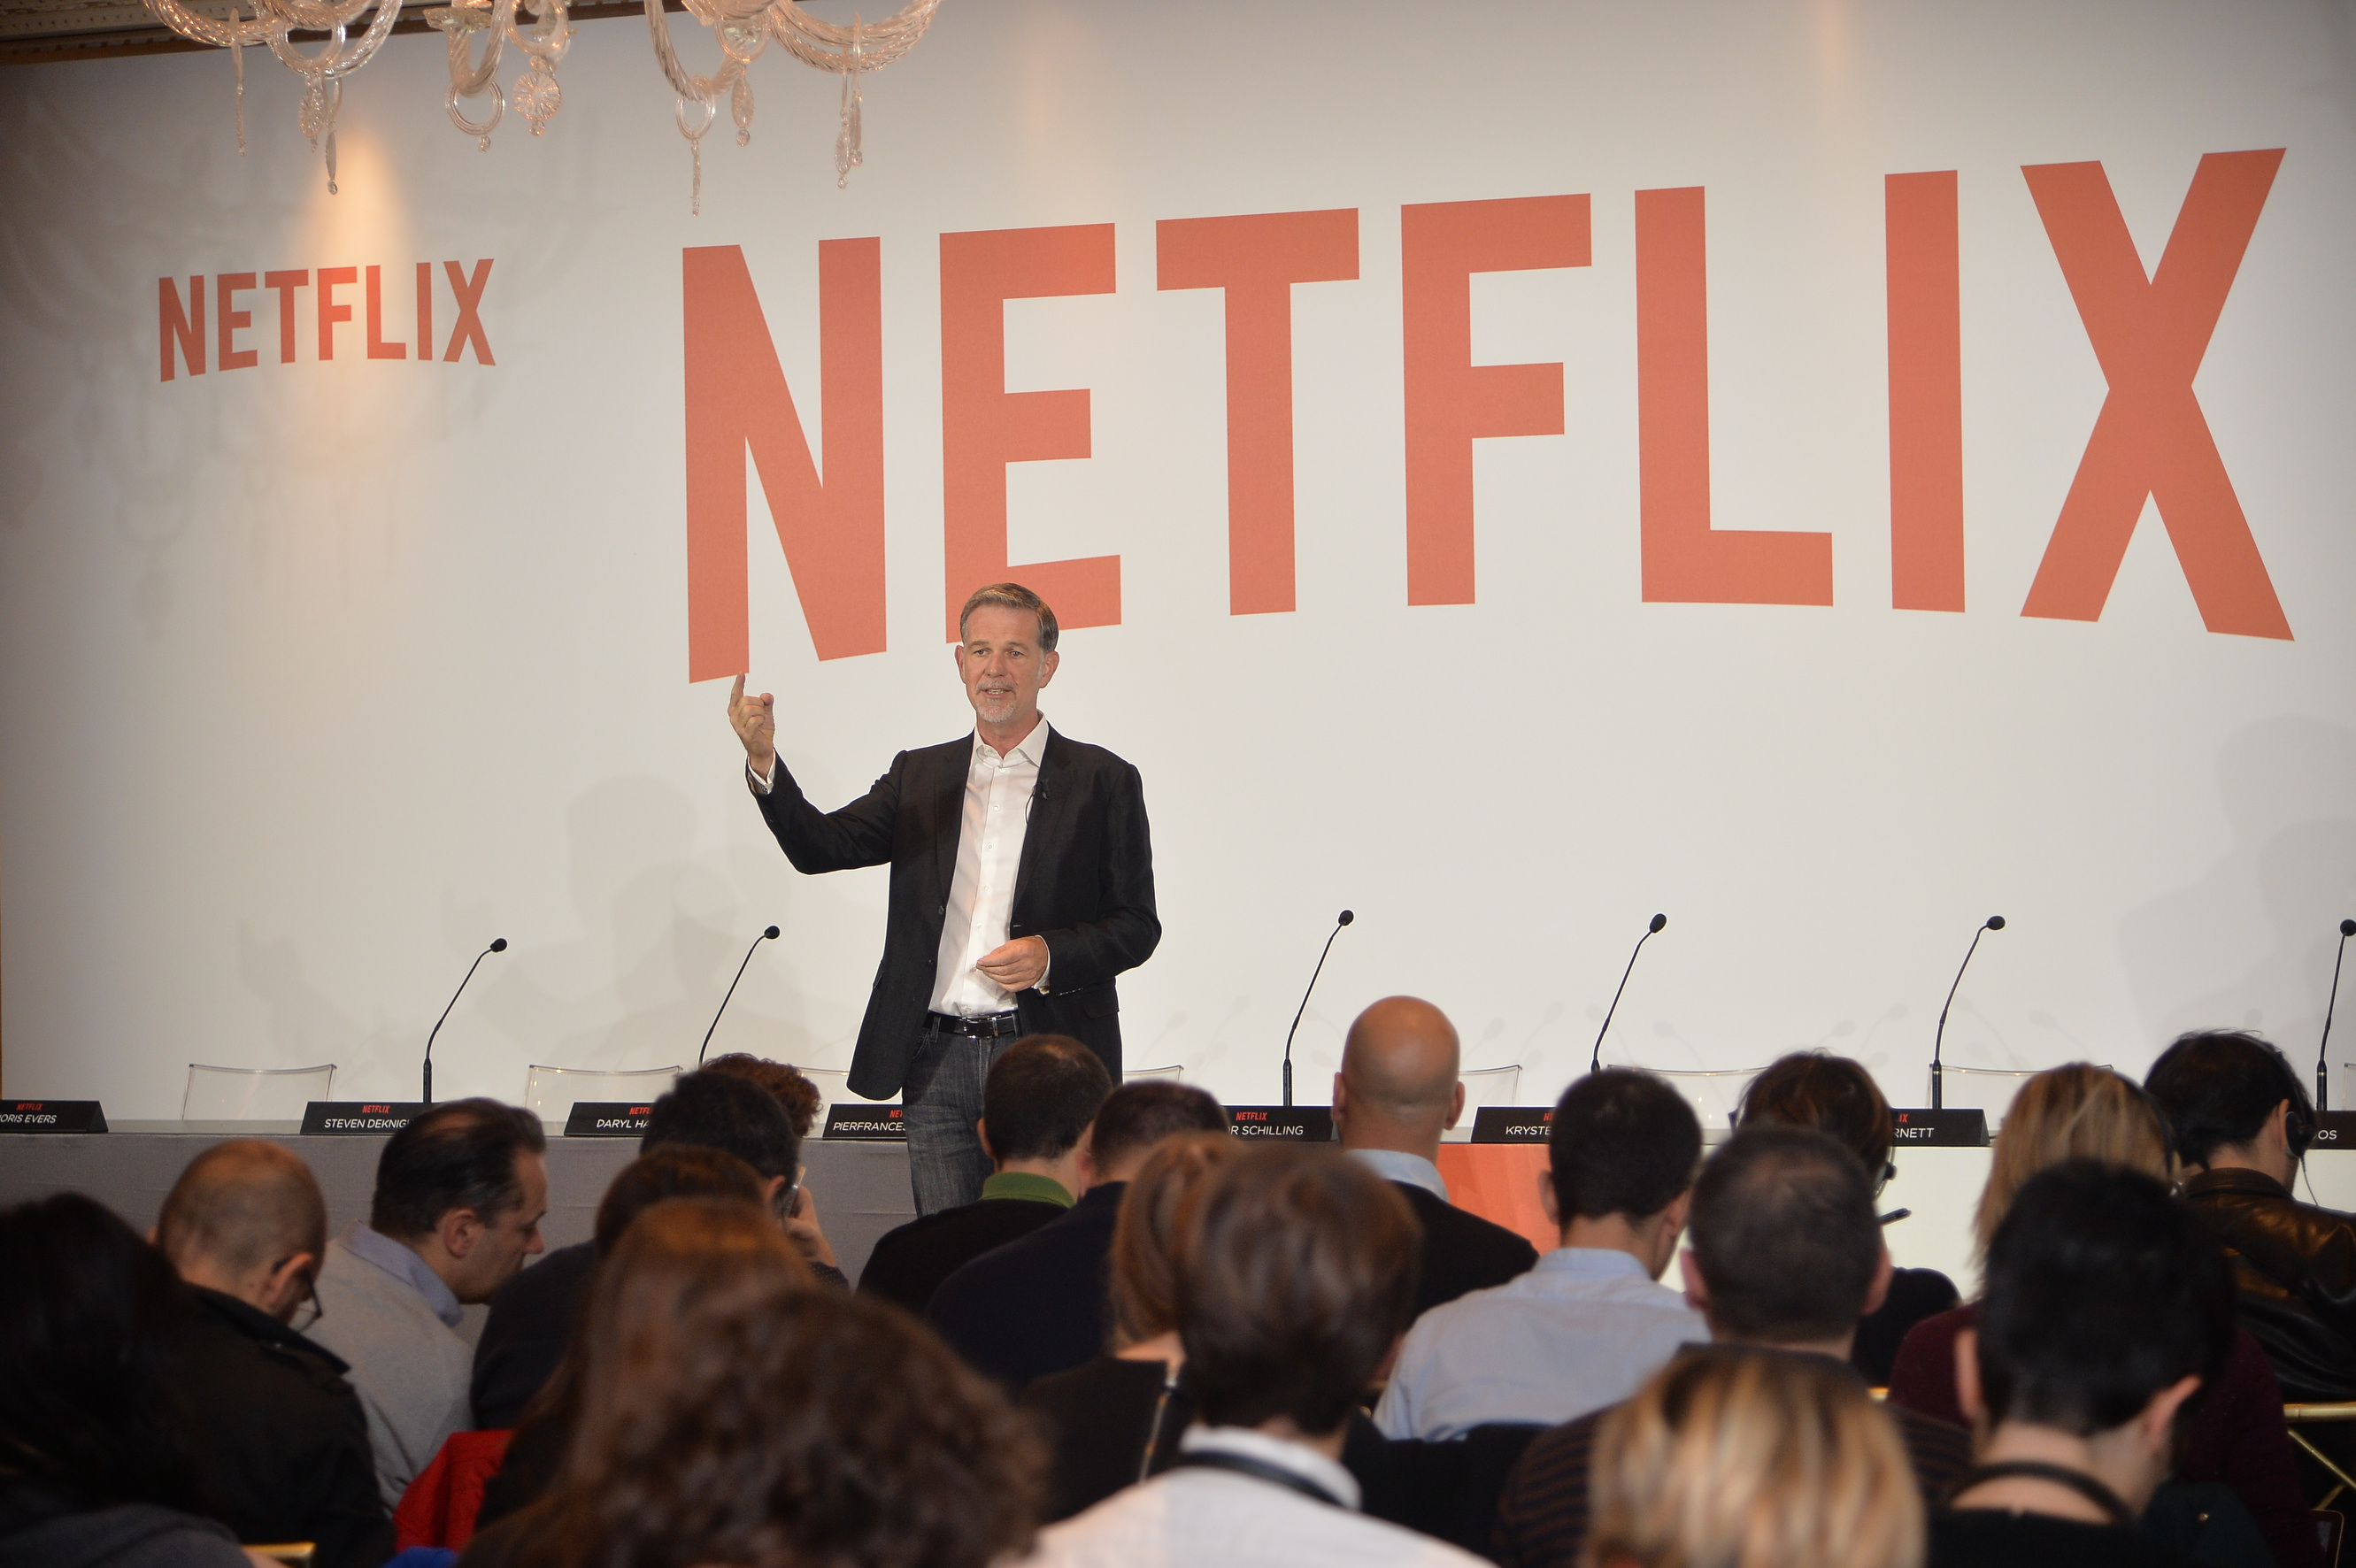 Reed Hastings alla conferenza stampa di Netflix